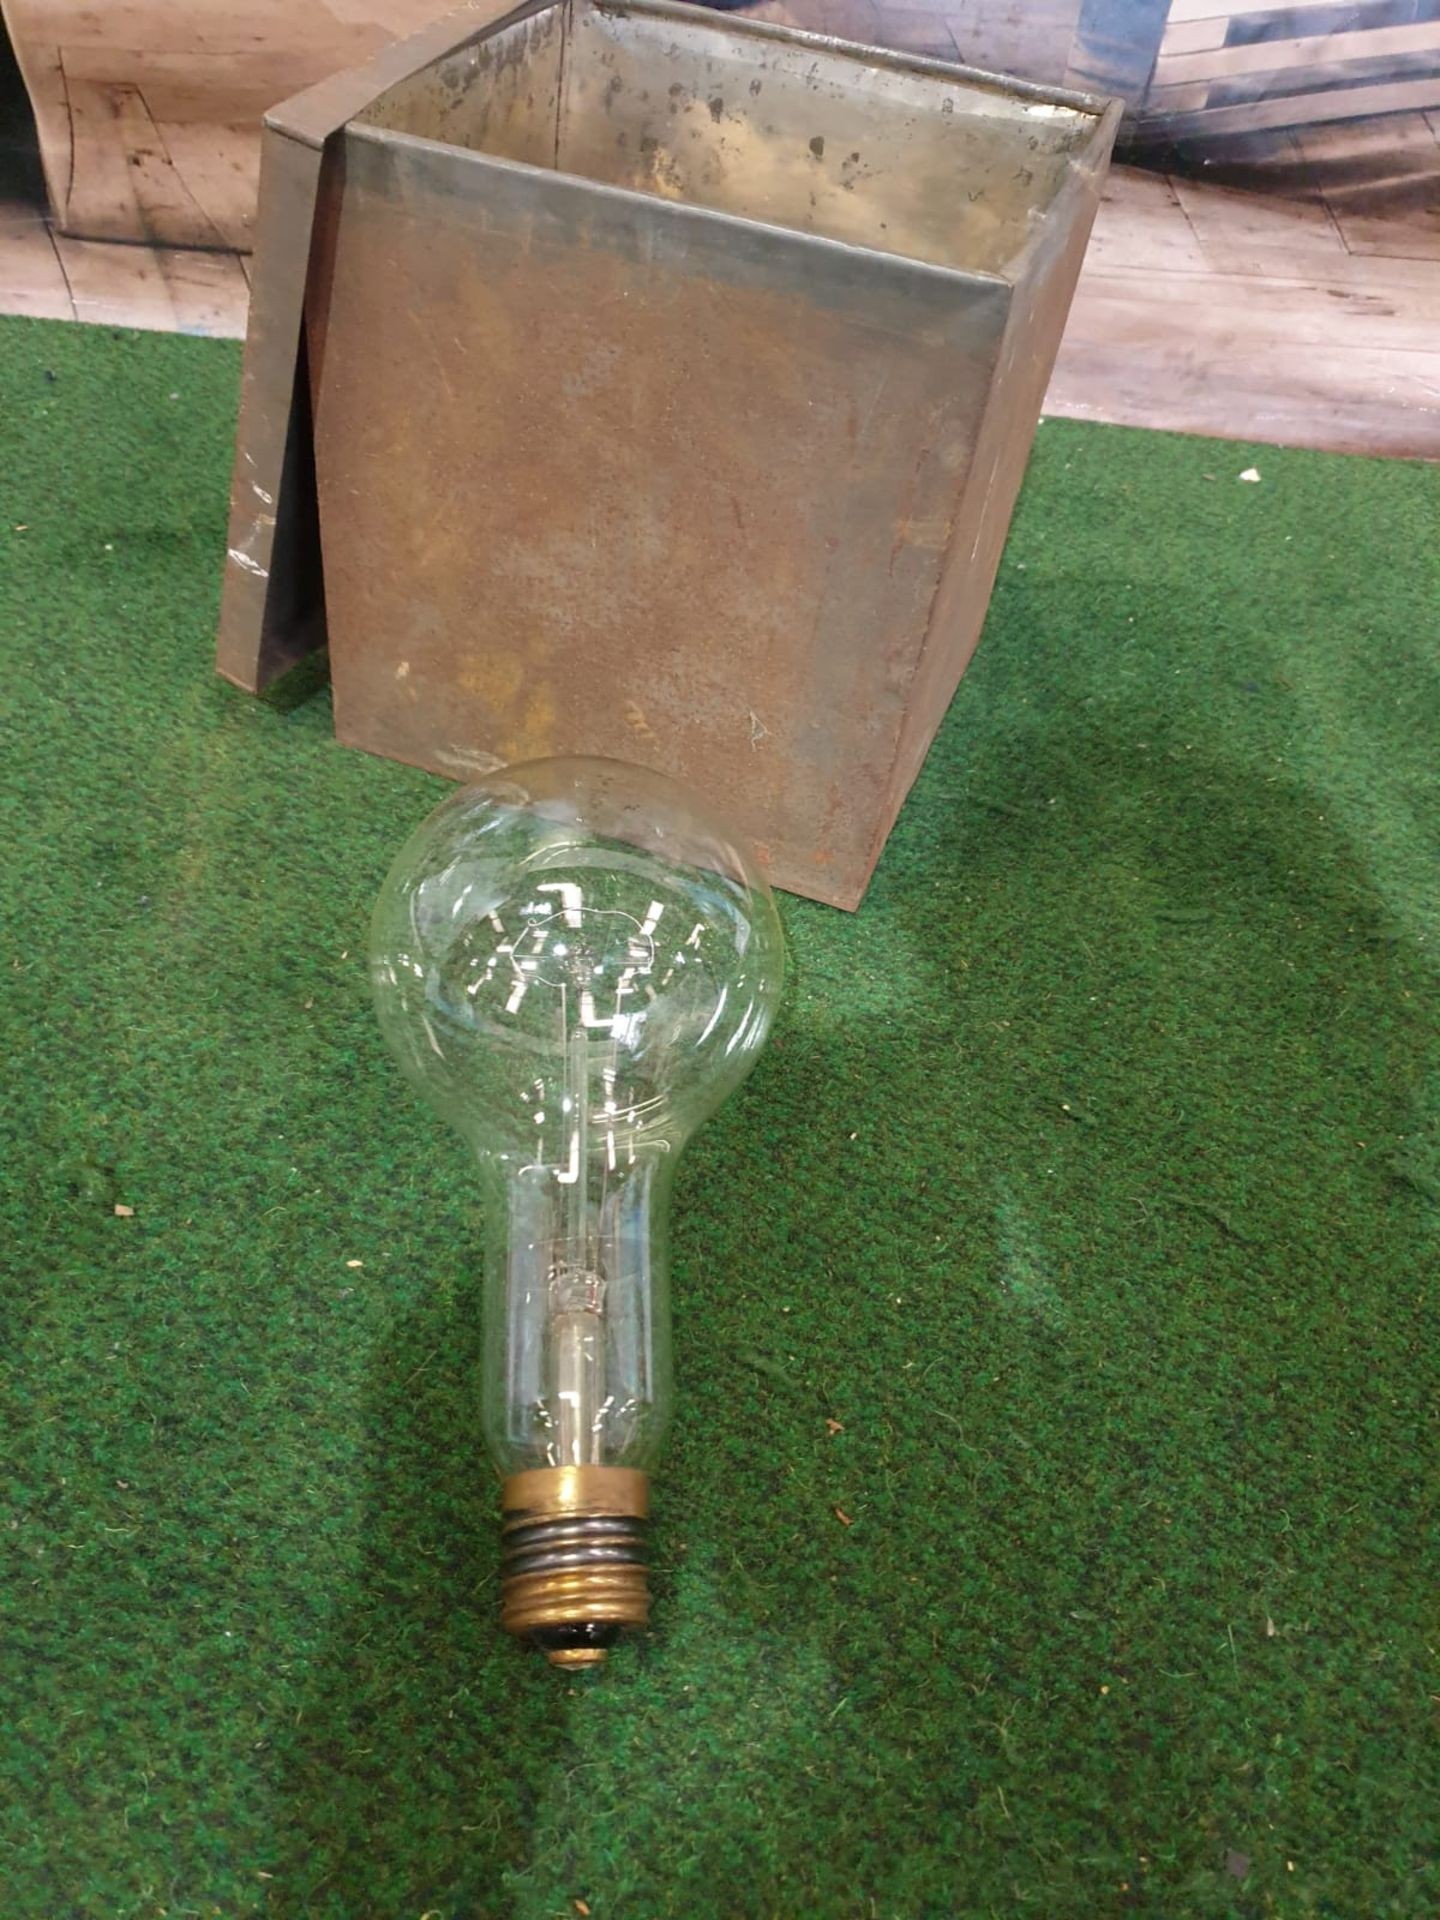 Large electric light bulb with screw fitting, Edison origin.Large electric light bulb with screw